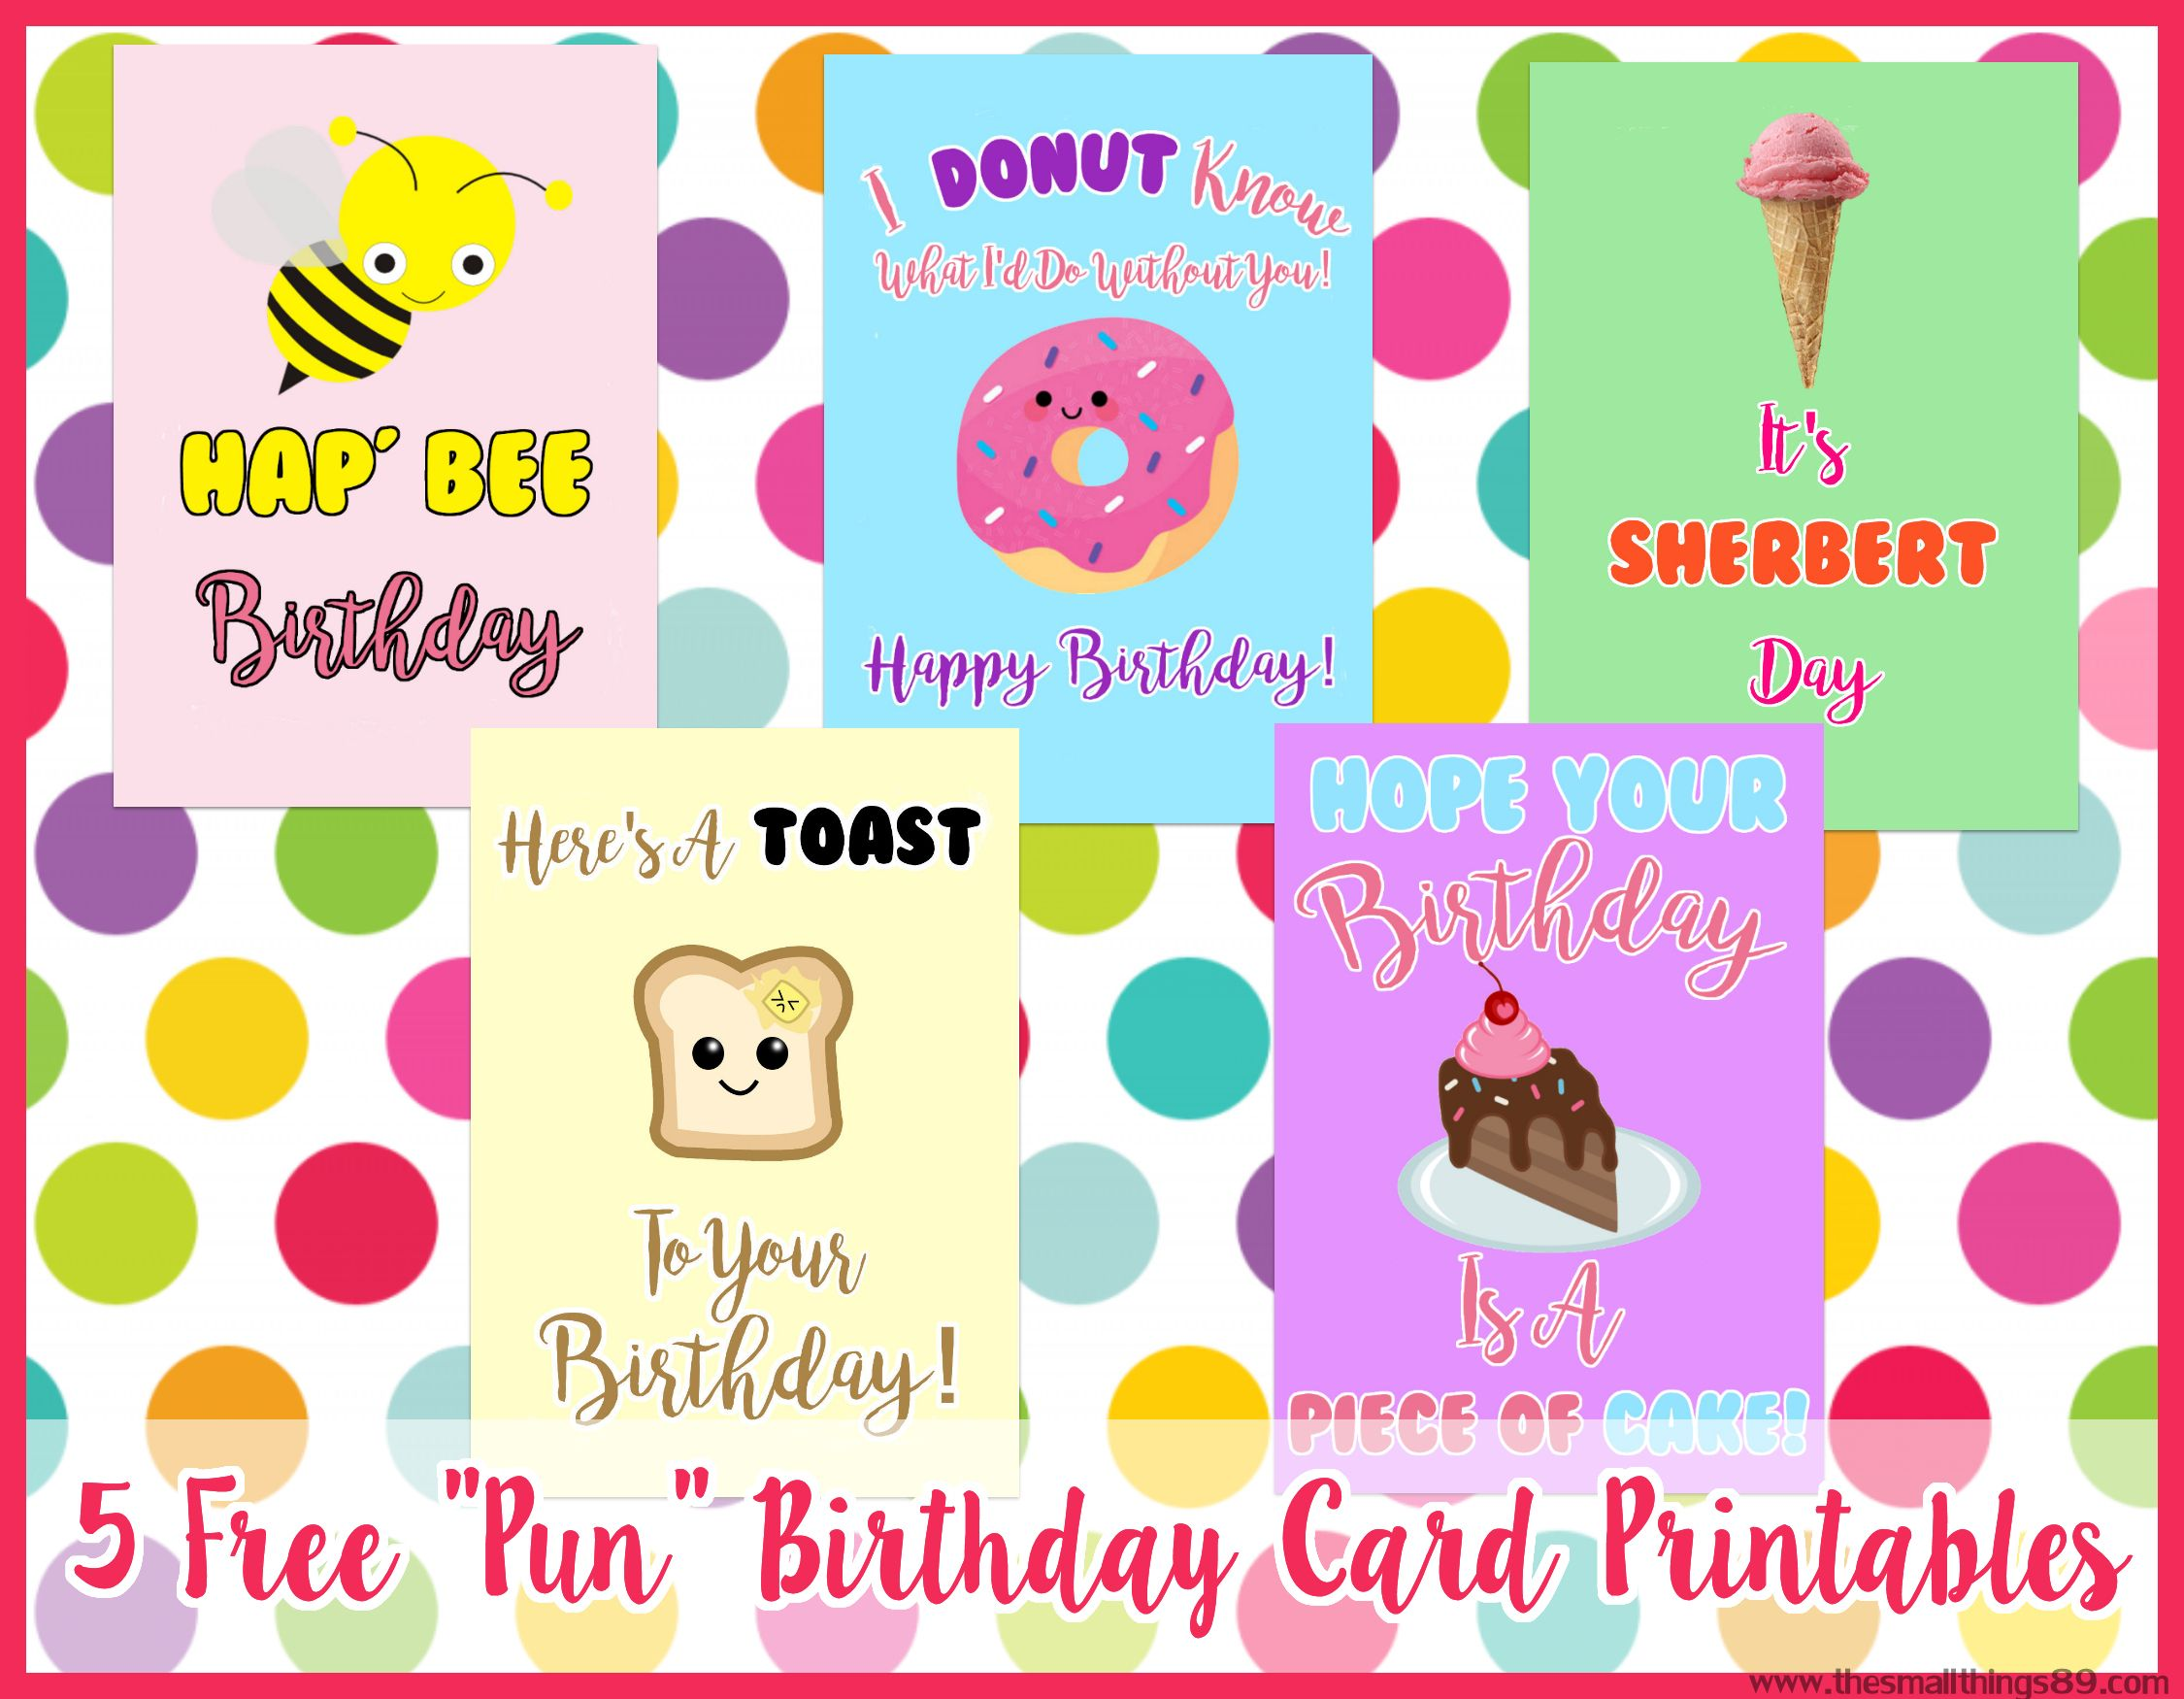 Check out these cute Free Pun Birthday Card 5x7 Printables!   Birthday puns, Happy birthday ...